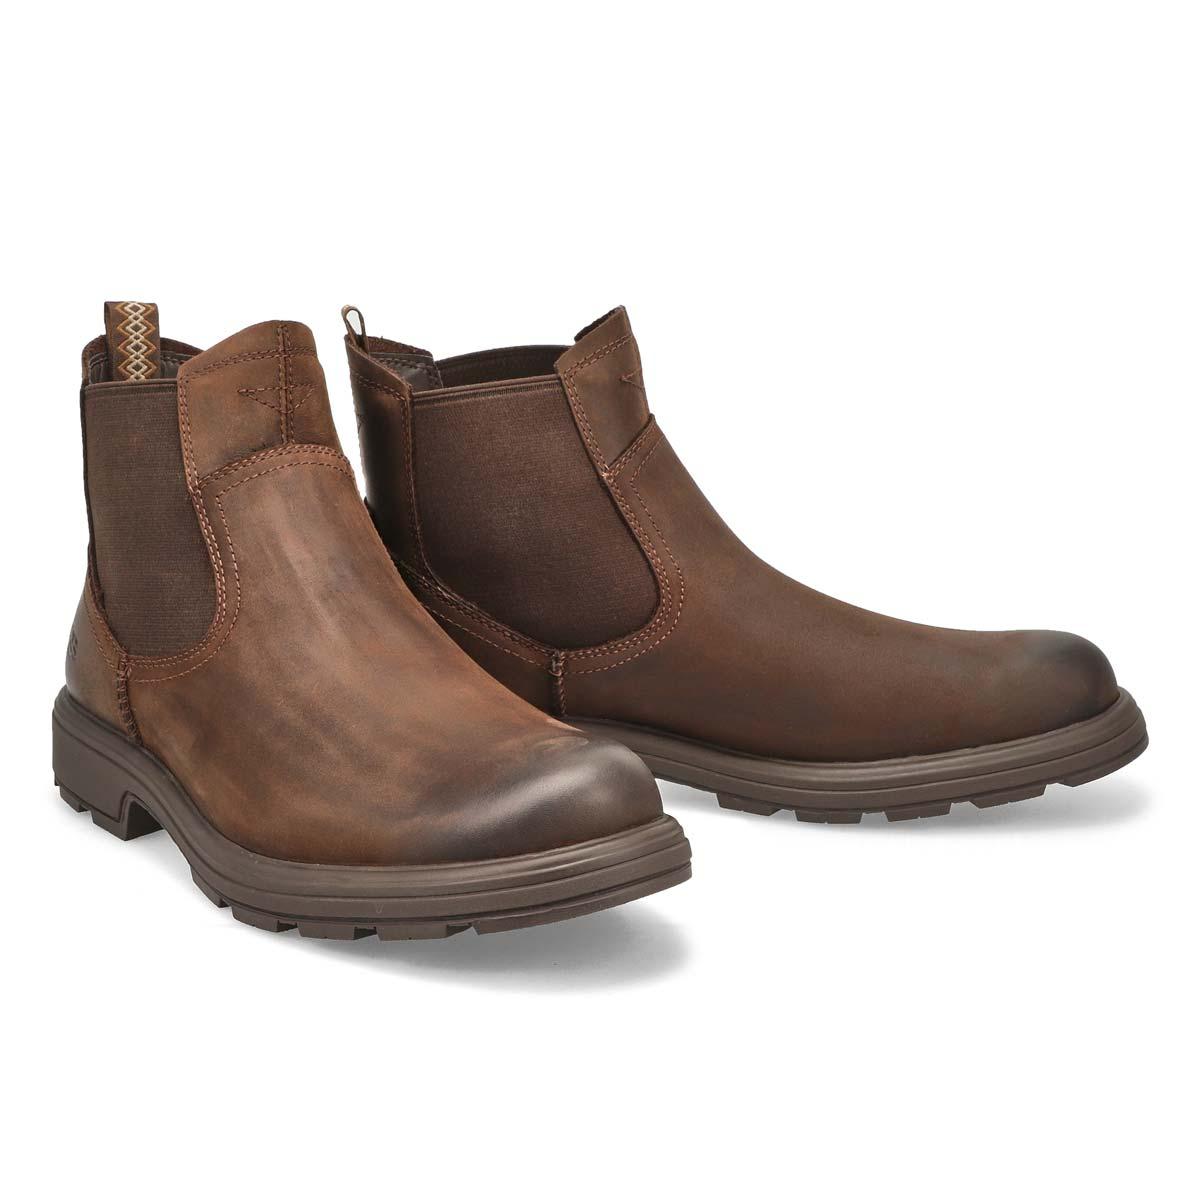 Mns Biltmore stout wtpf chelsea boot